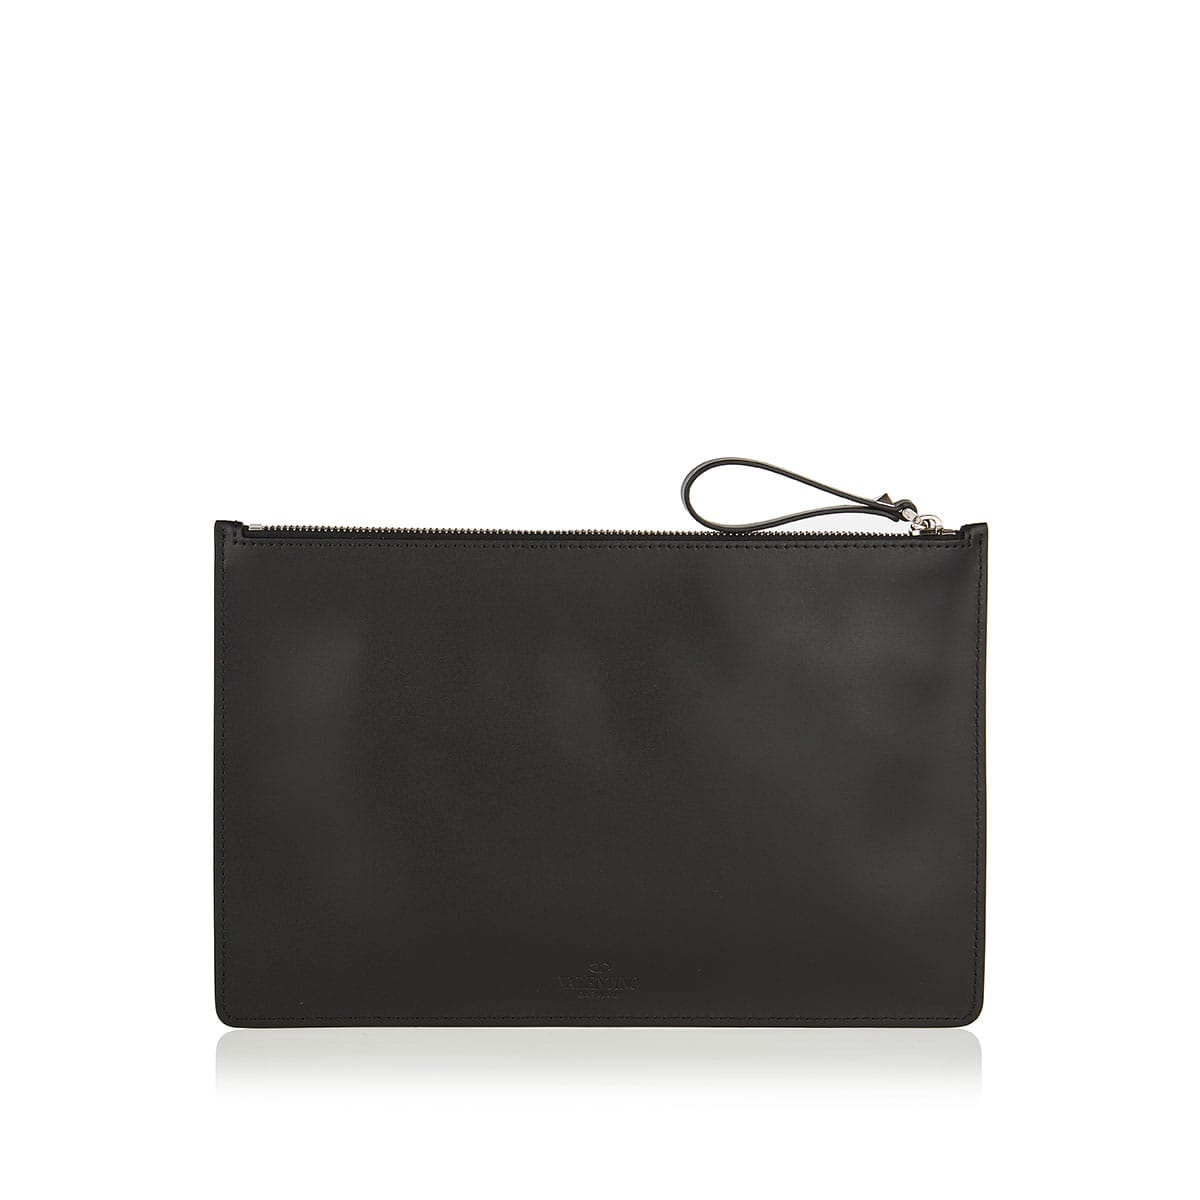 VLTN logo leather pouch